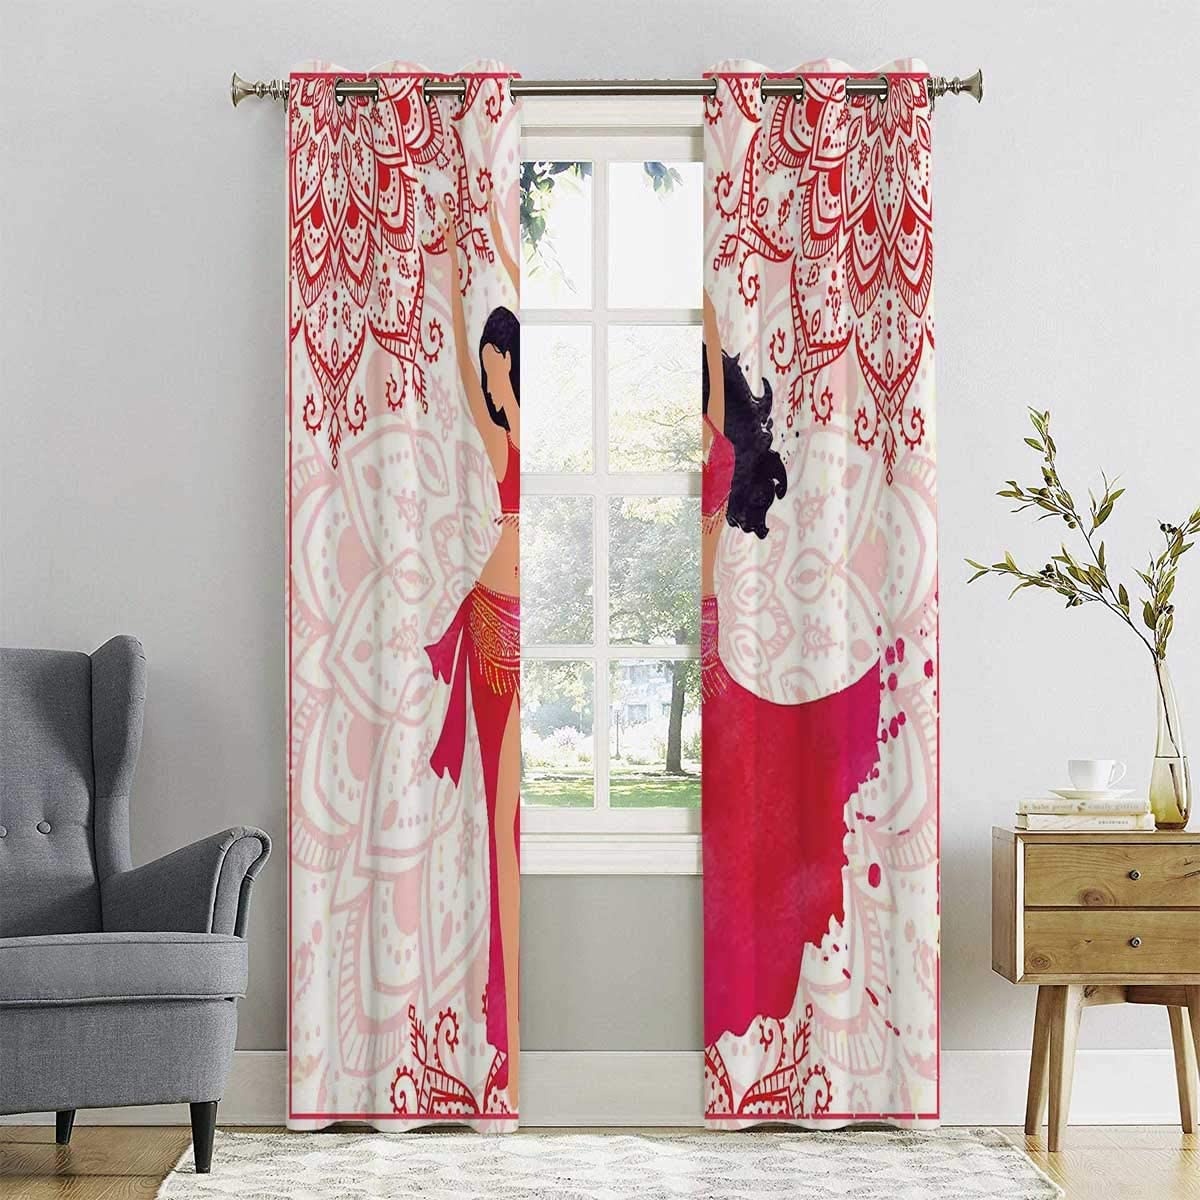 HELLOLEON 100 Blackout Lining Curtain Belly Dancer Woman Full Shading Treatment Kitchen Insulation Curtain W72 x L72 Inch